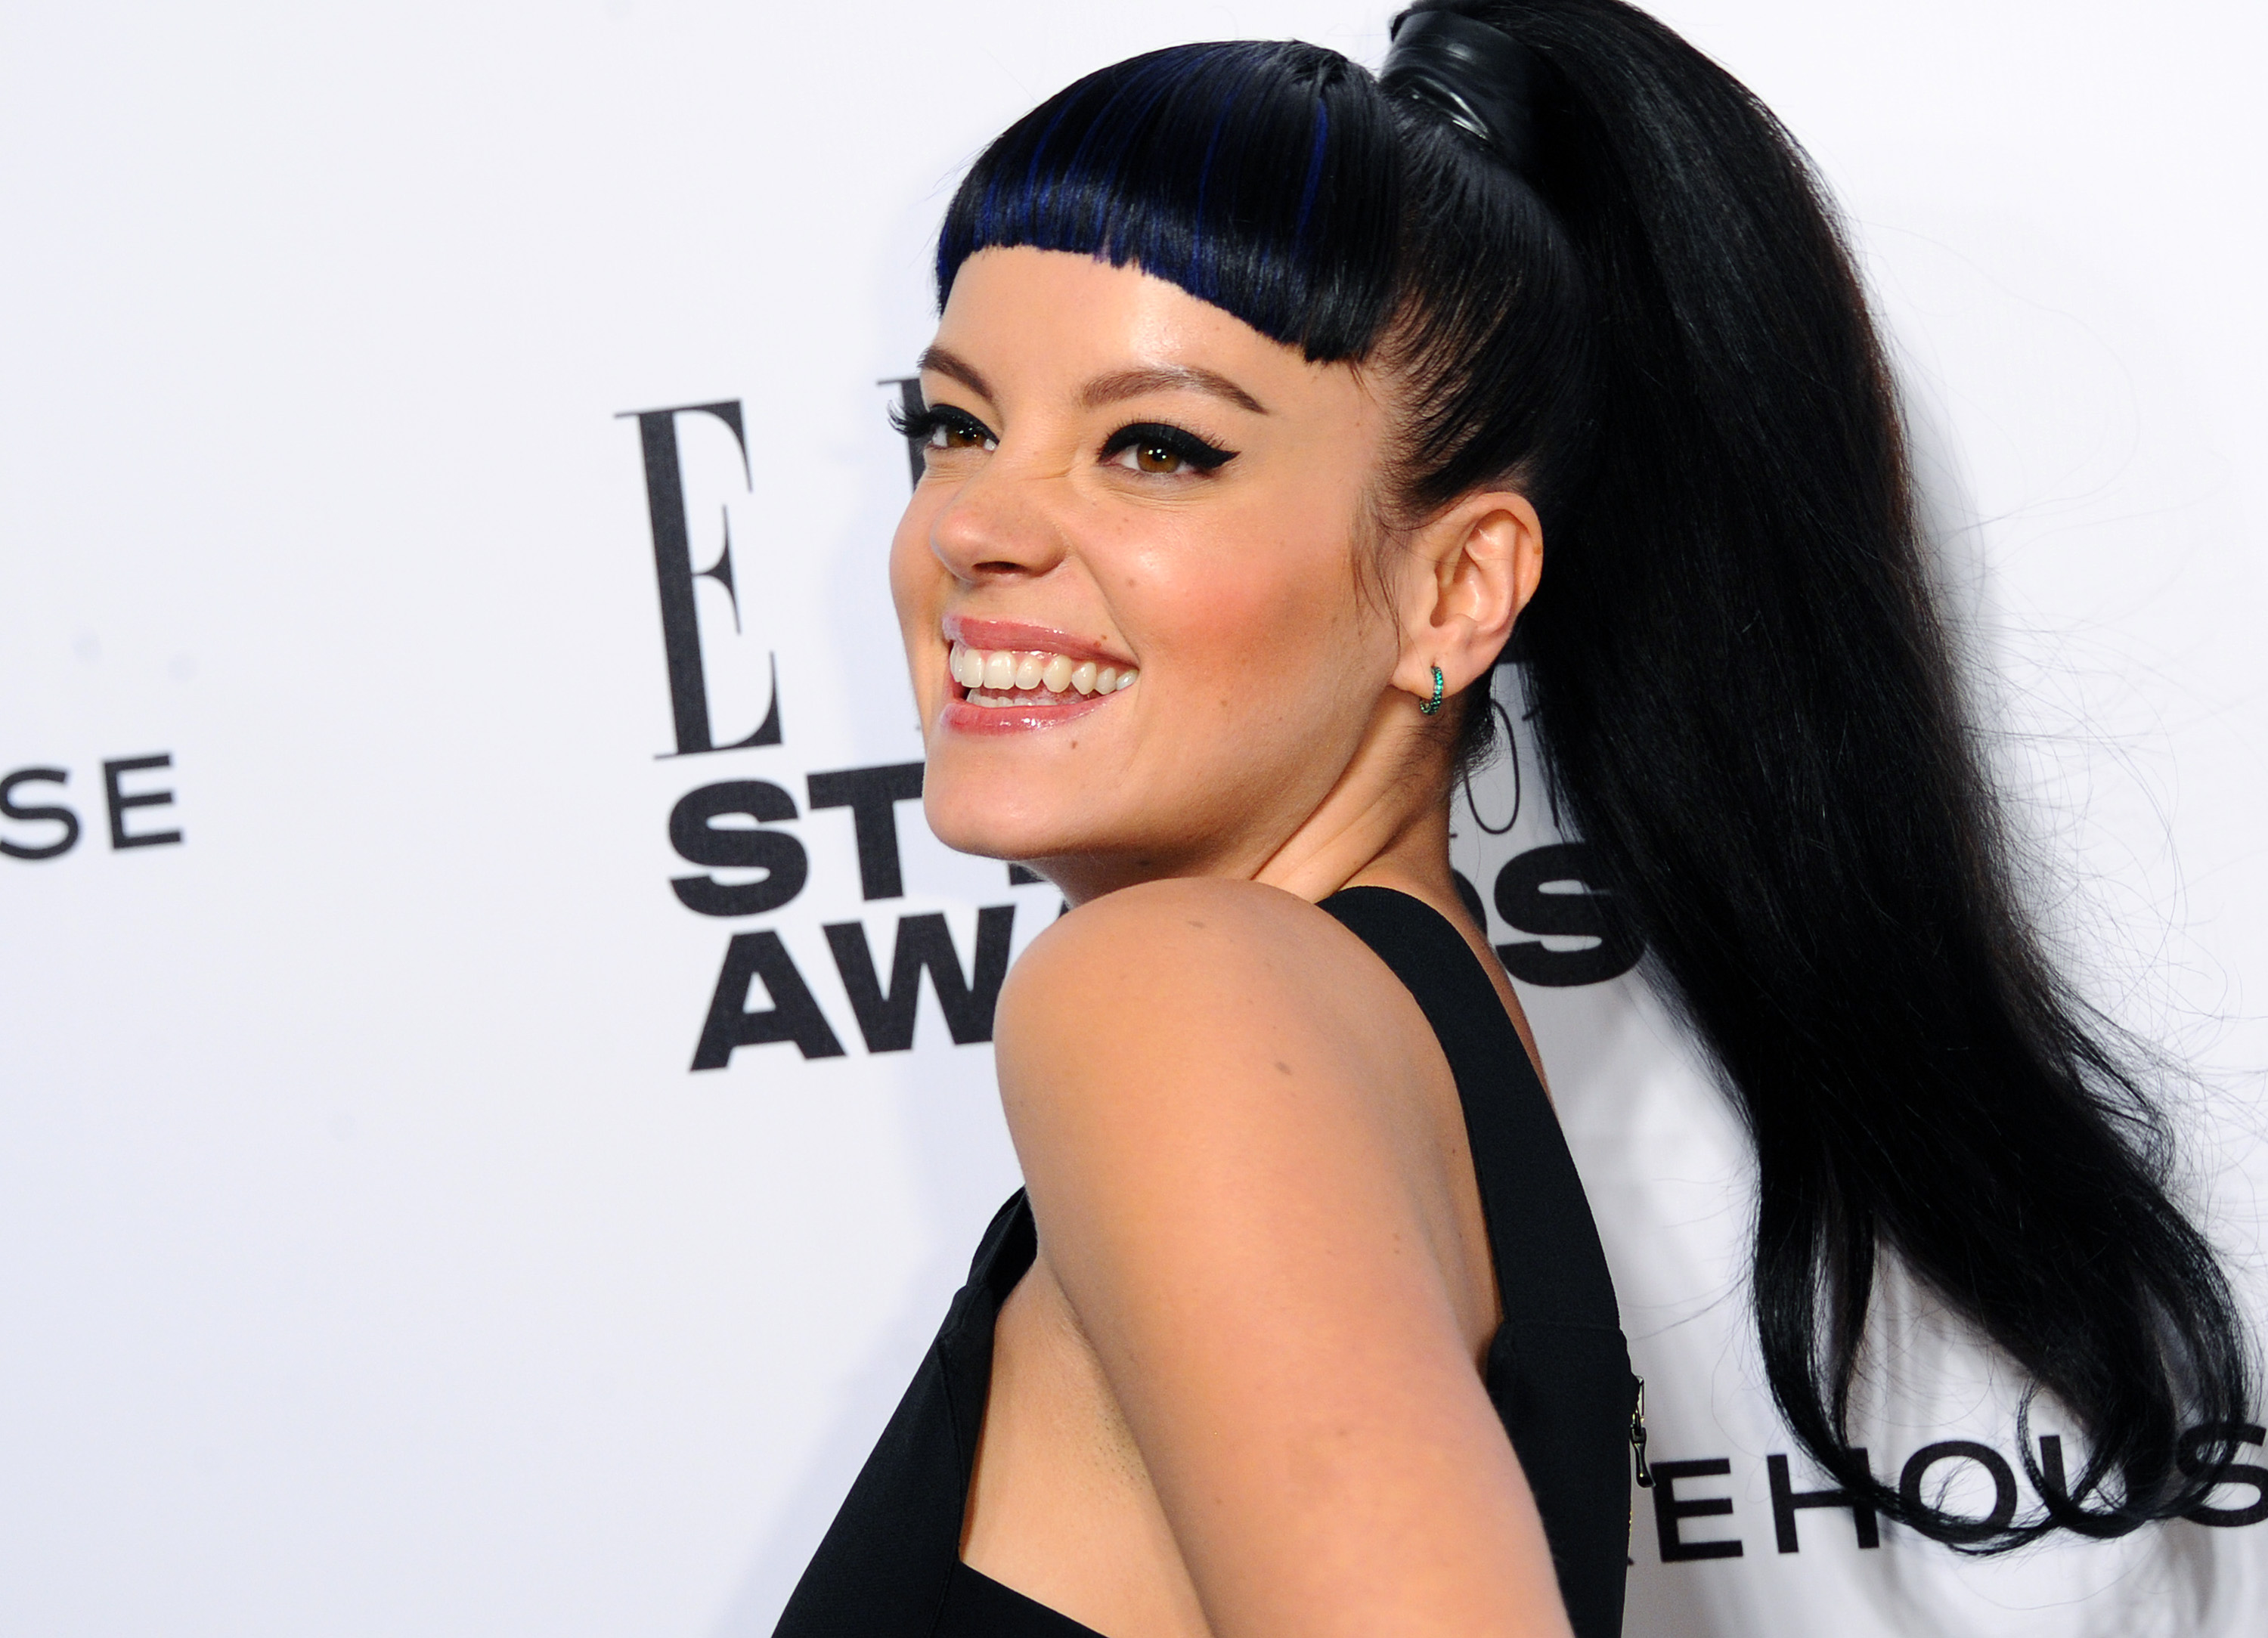 45. Lily Allen 45. Lily Allen new picture